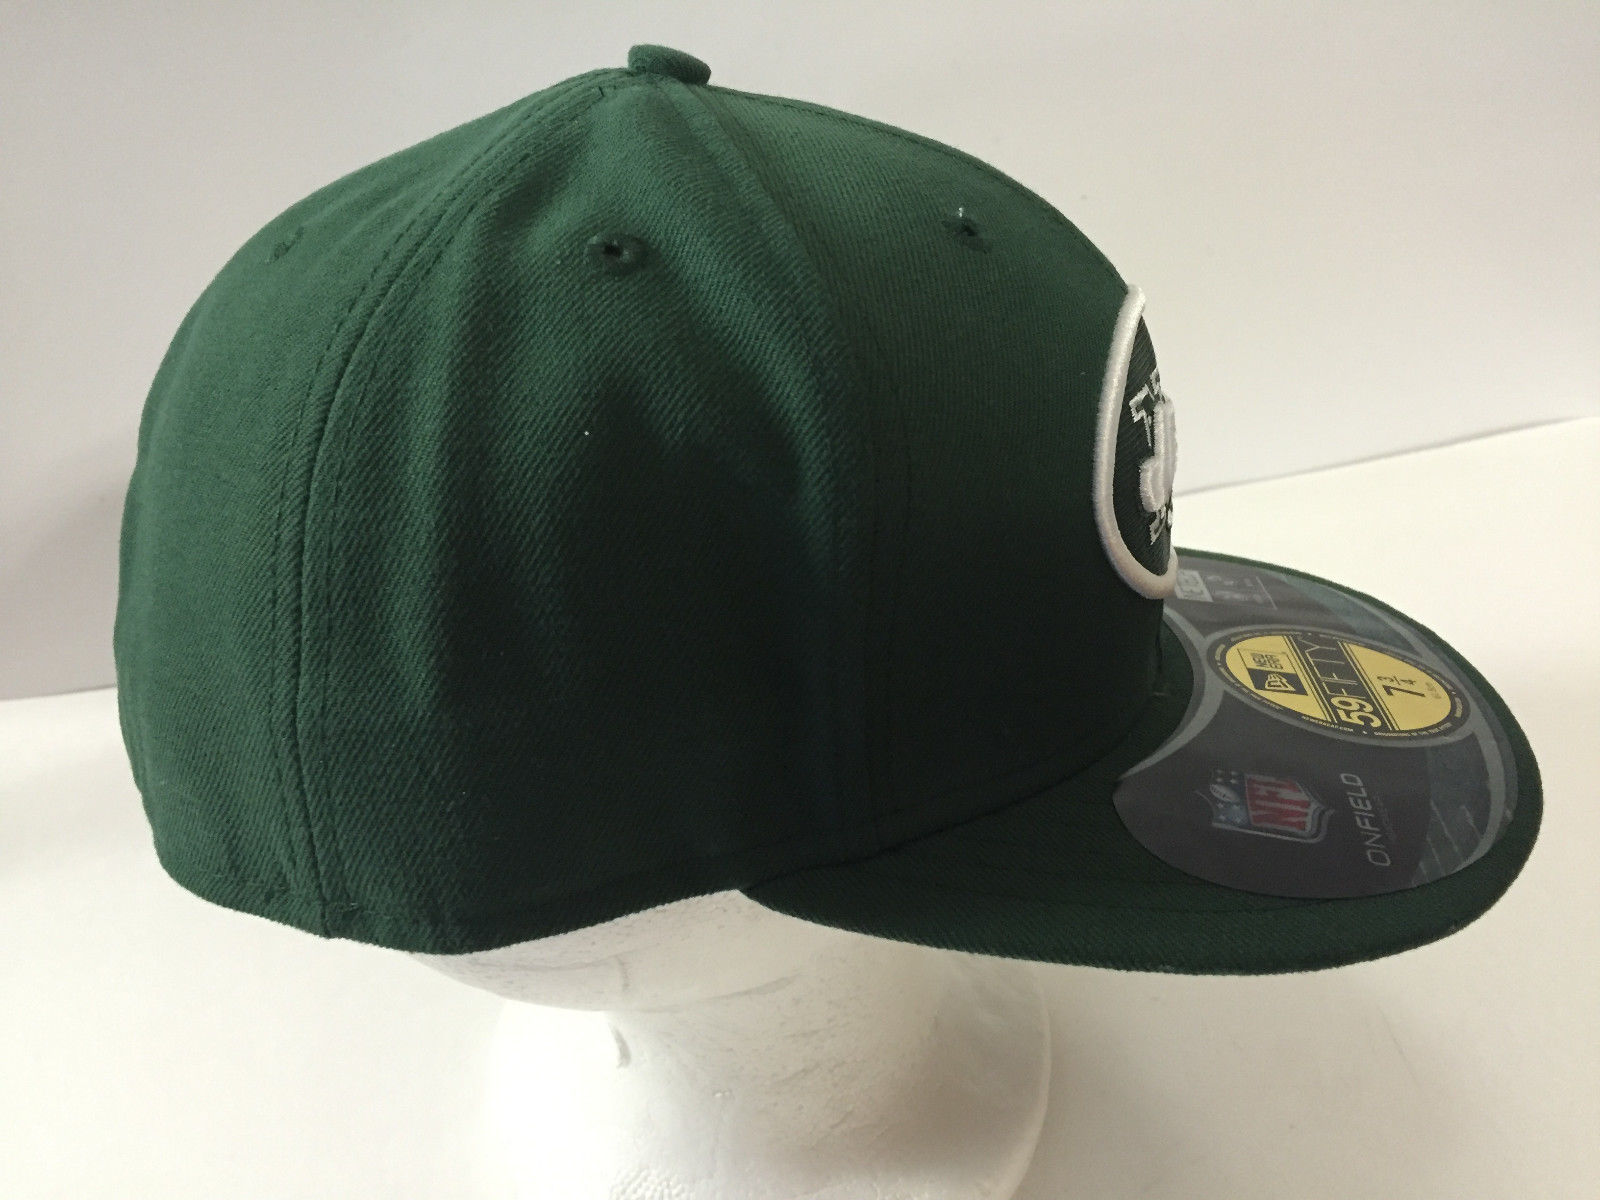 New York Jets New Era 59 Fifty 50 On Field and 50 similar items b7b218dc3